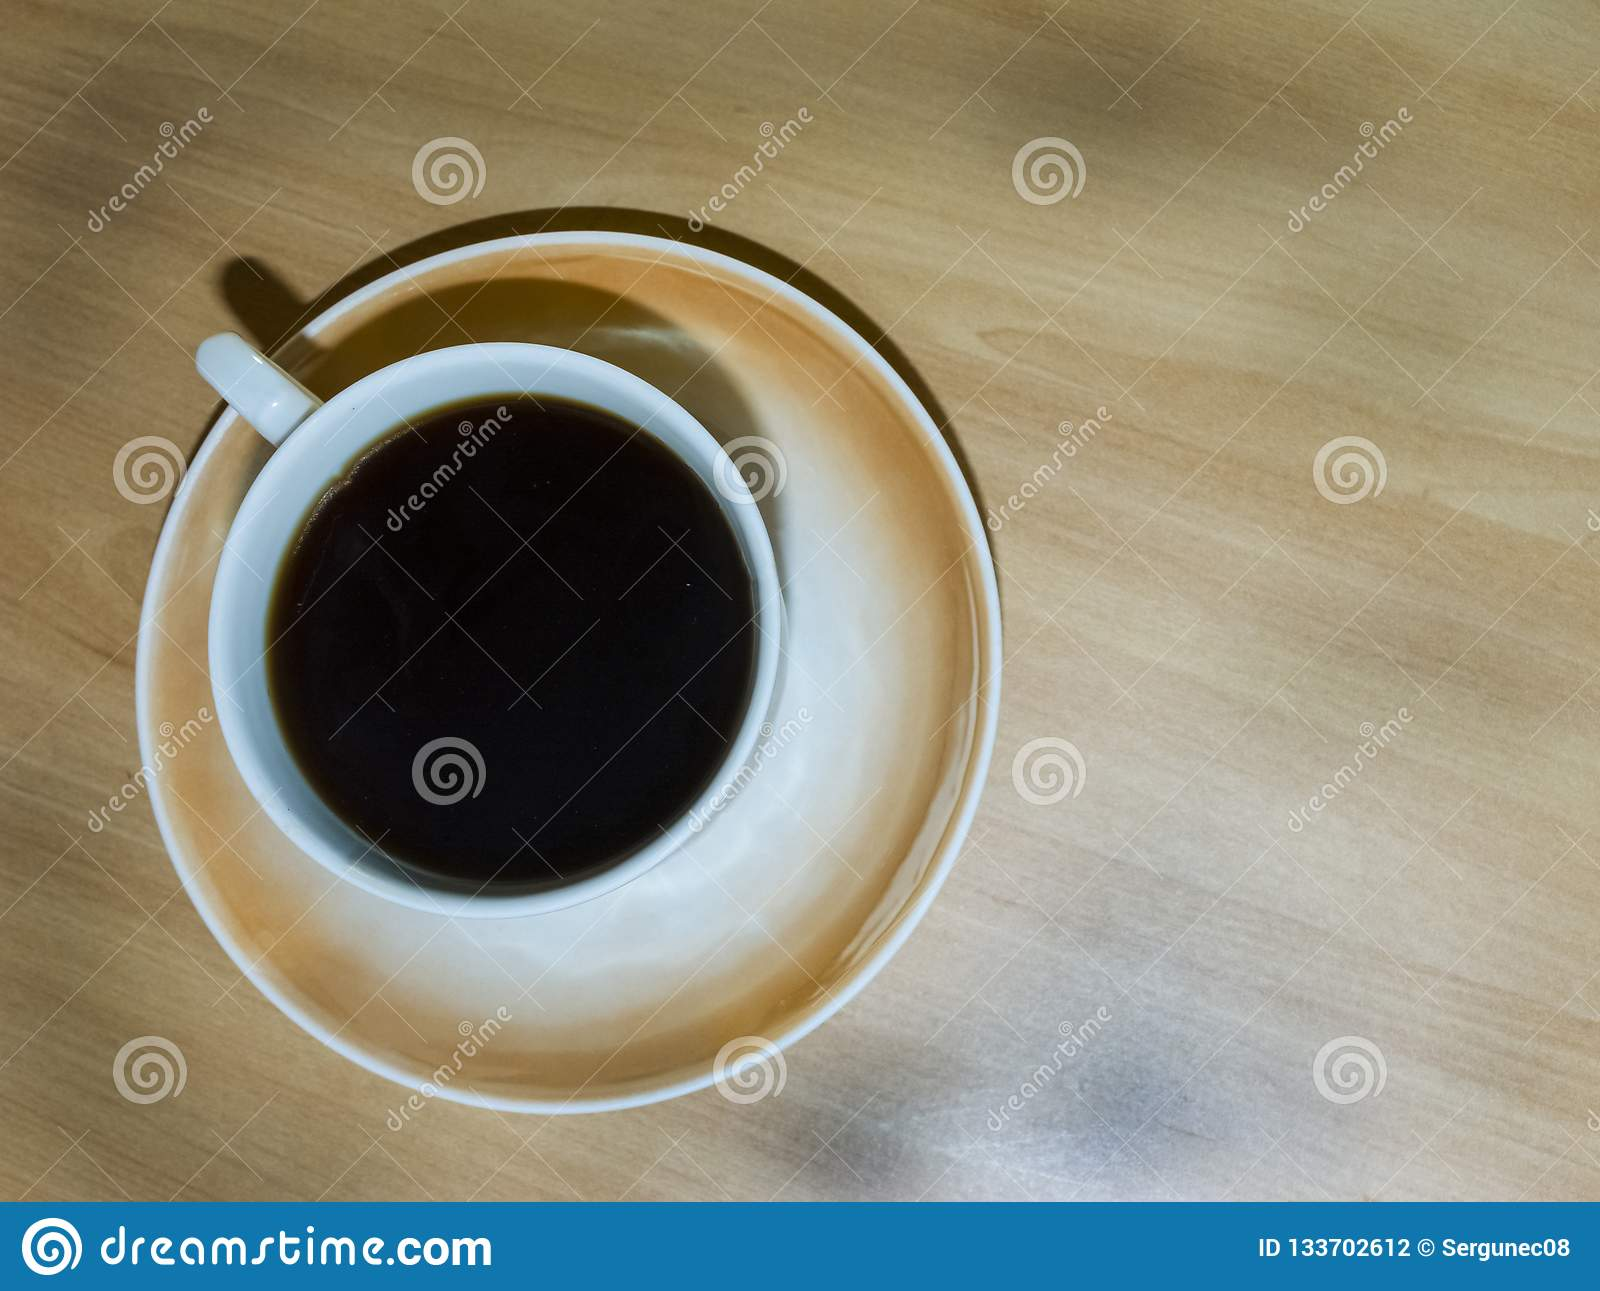 A Cup of coffee on a light wooden table.